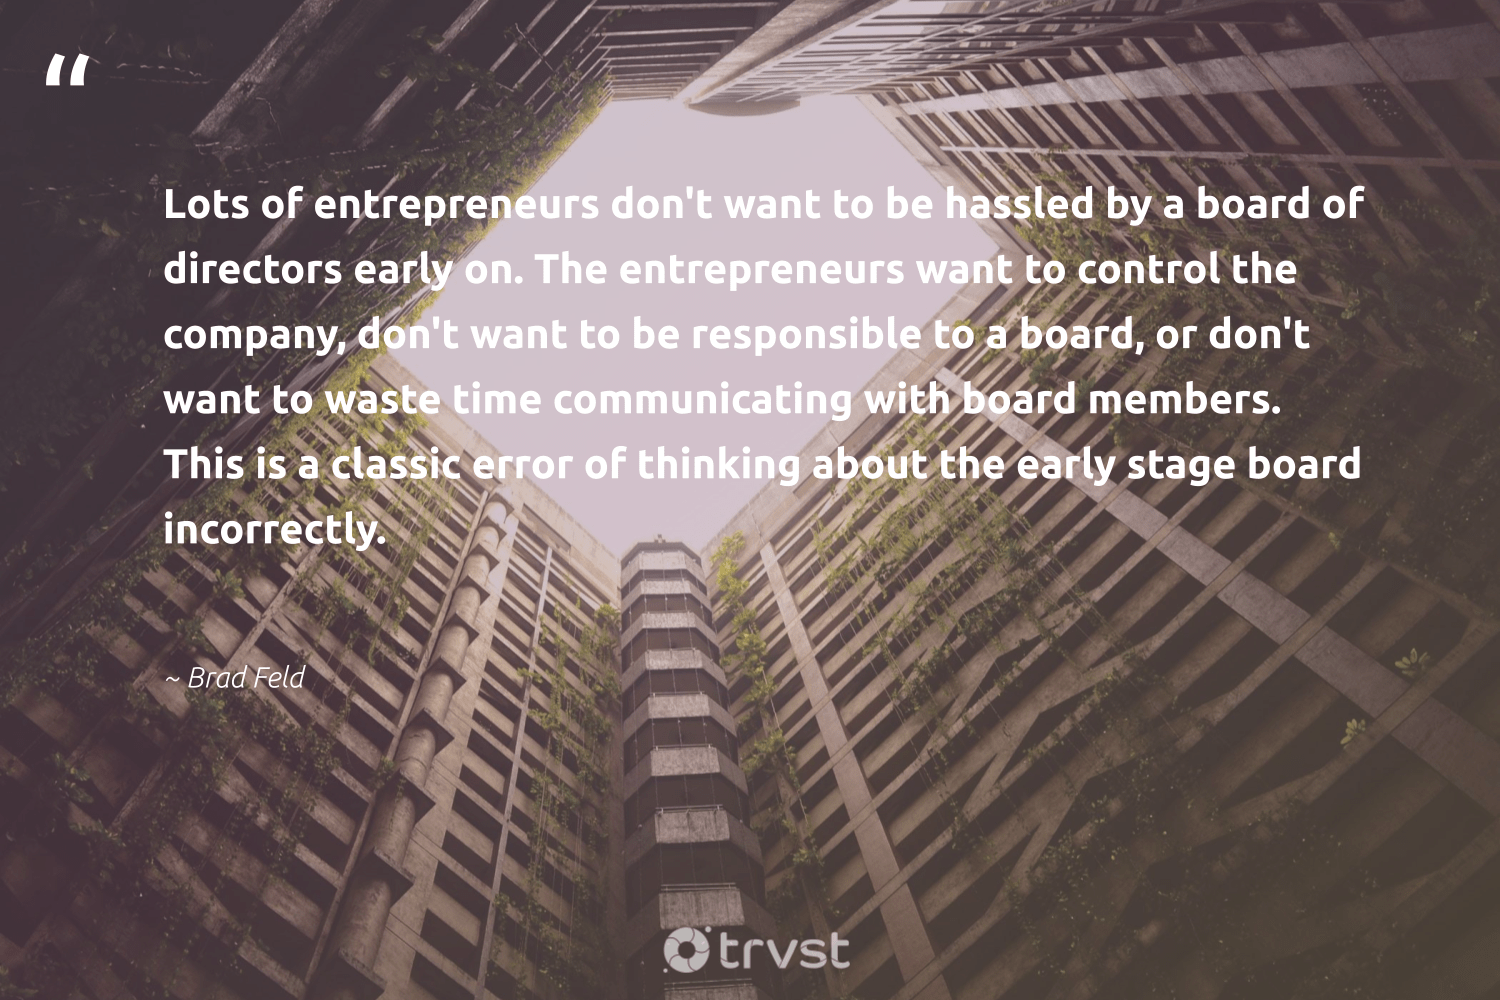 """""""Lots of entrepreneurs don't want to be hassled by a board of directors early on. The entrepreneurs want to control the company, don't want to be responsible to a board, or don't want to waste time communicating with board members. This is a classic error of thinking about the early stage board incorrectly.""""  - Brad Feld #trvst #quotes #waste #dogood #changetheworld #makeadifference #gogreen #ethicalbusiness #beinspired #socialchange #bethechange #giveback"""